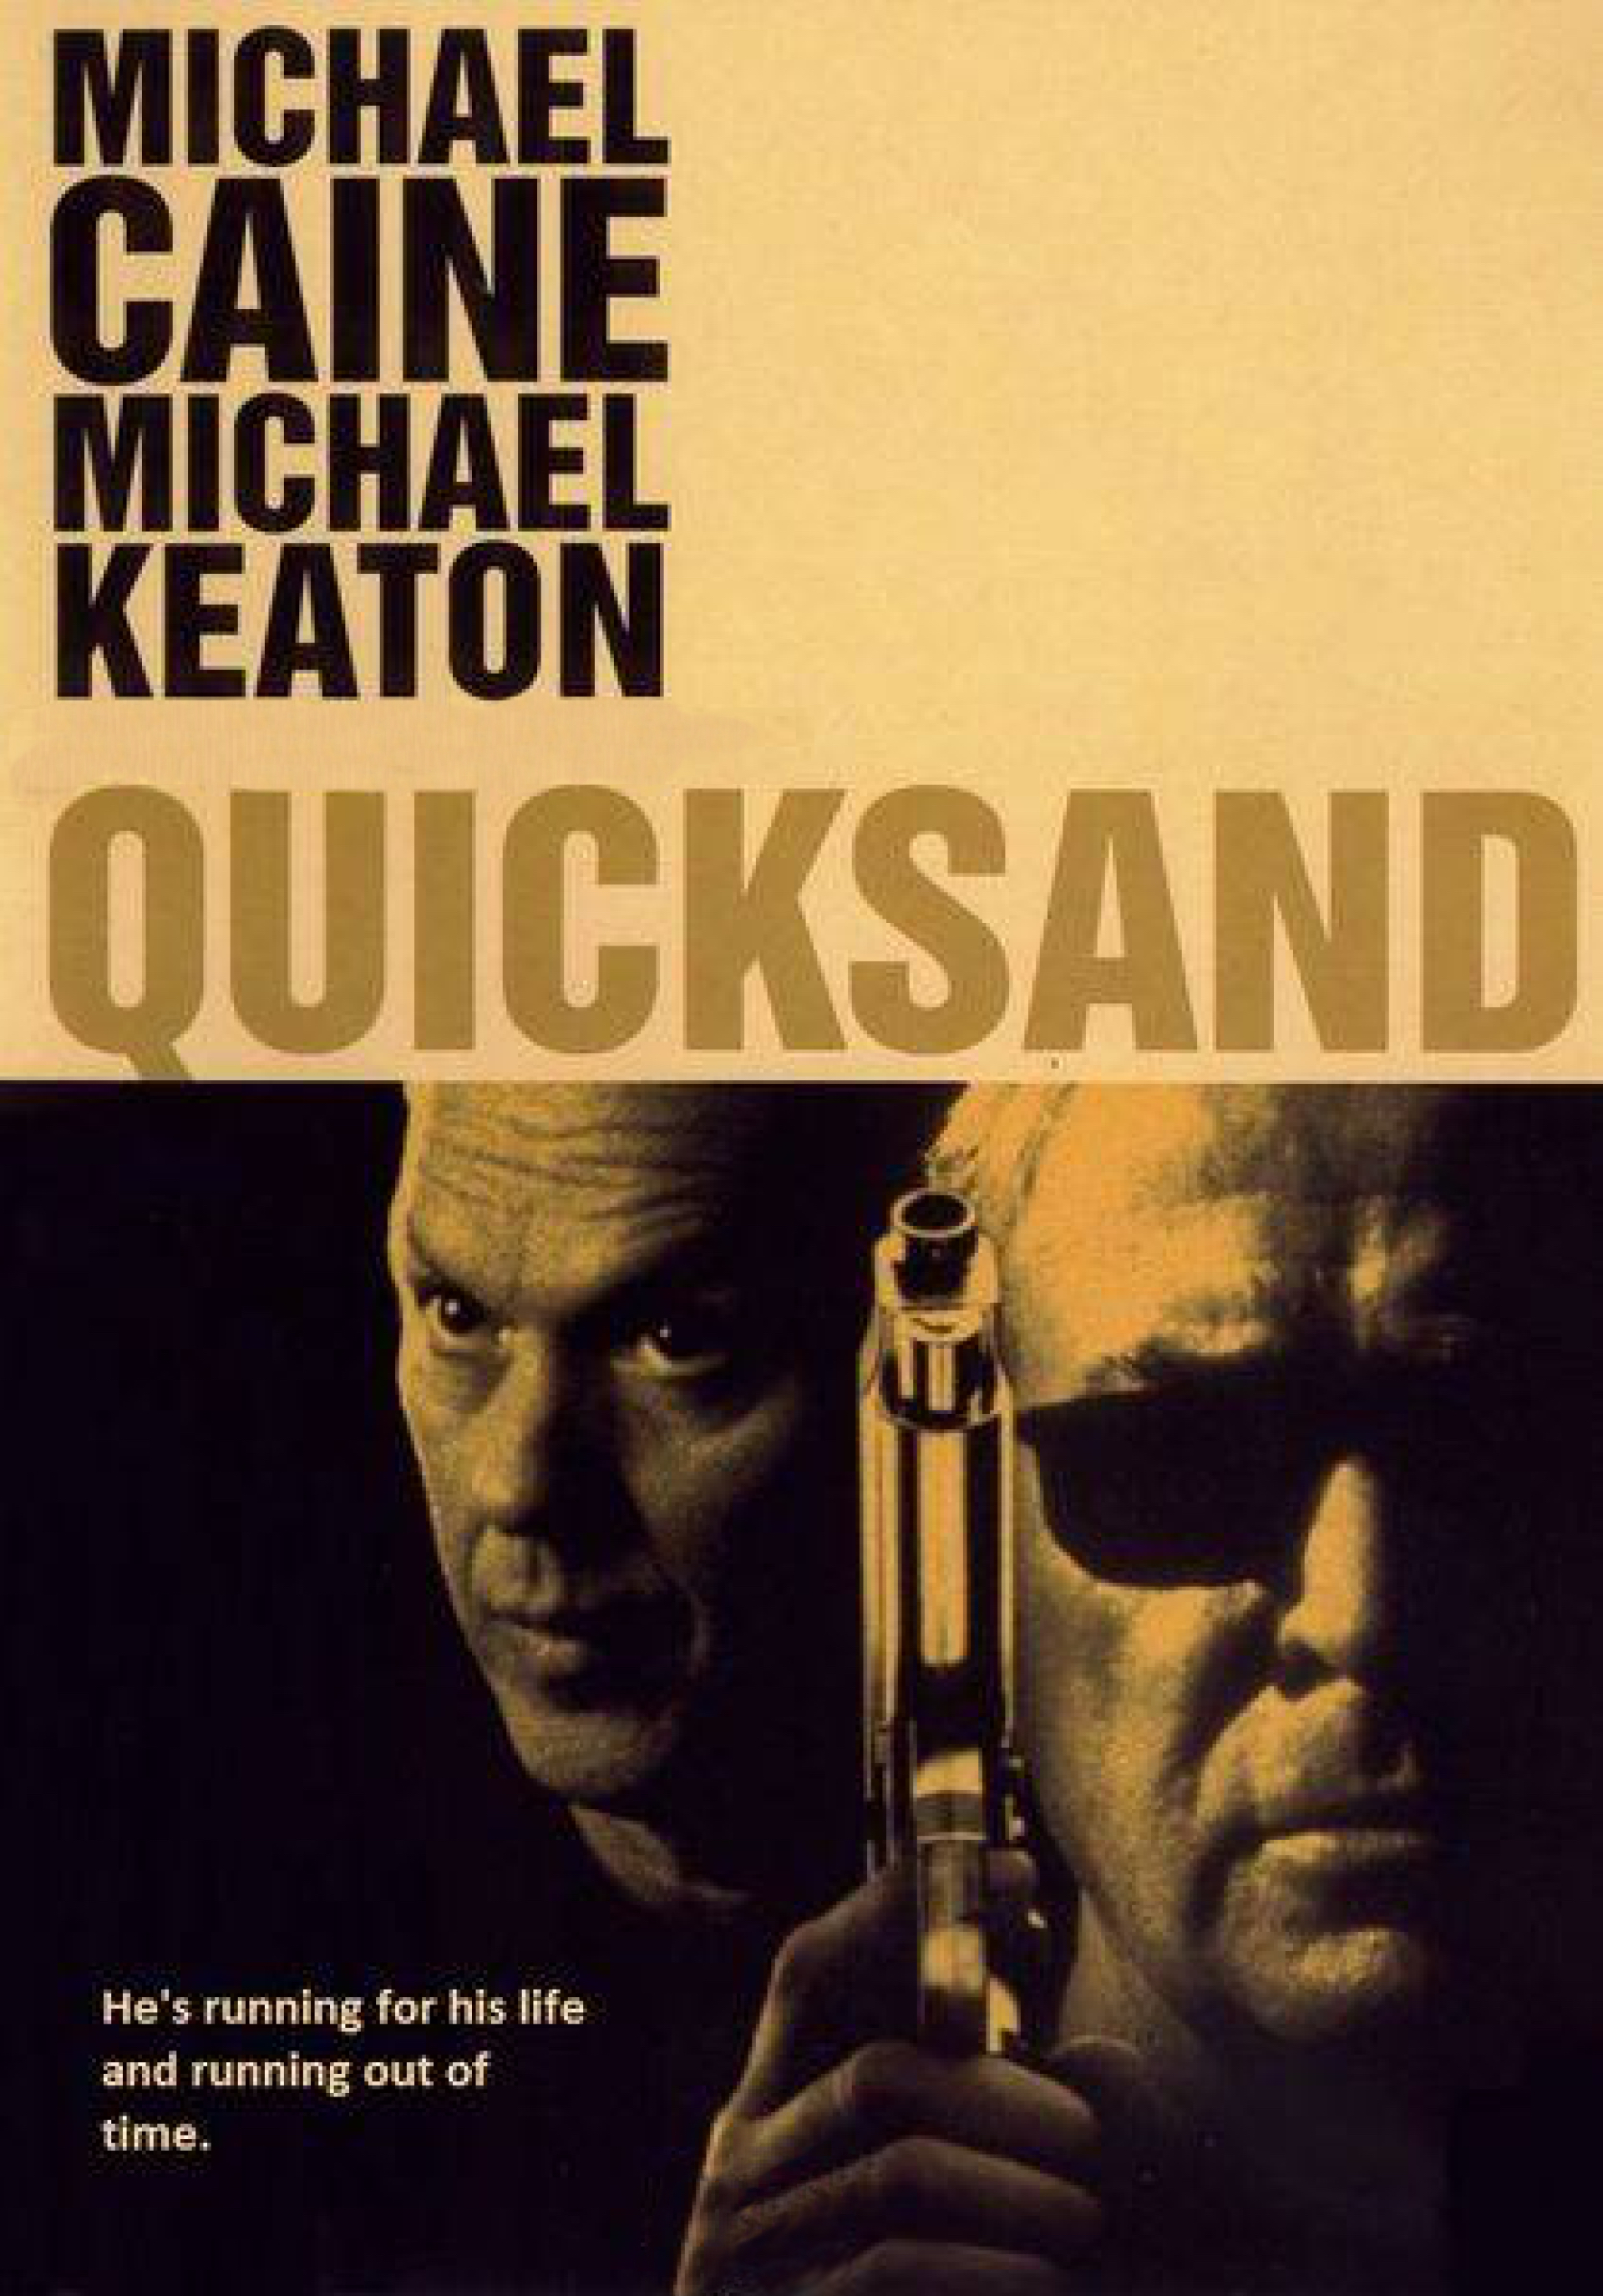 Quicksand - Score Catalog Artwork V1_CROP.jpg